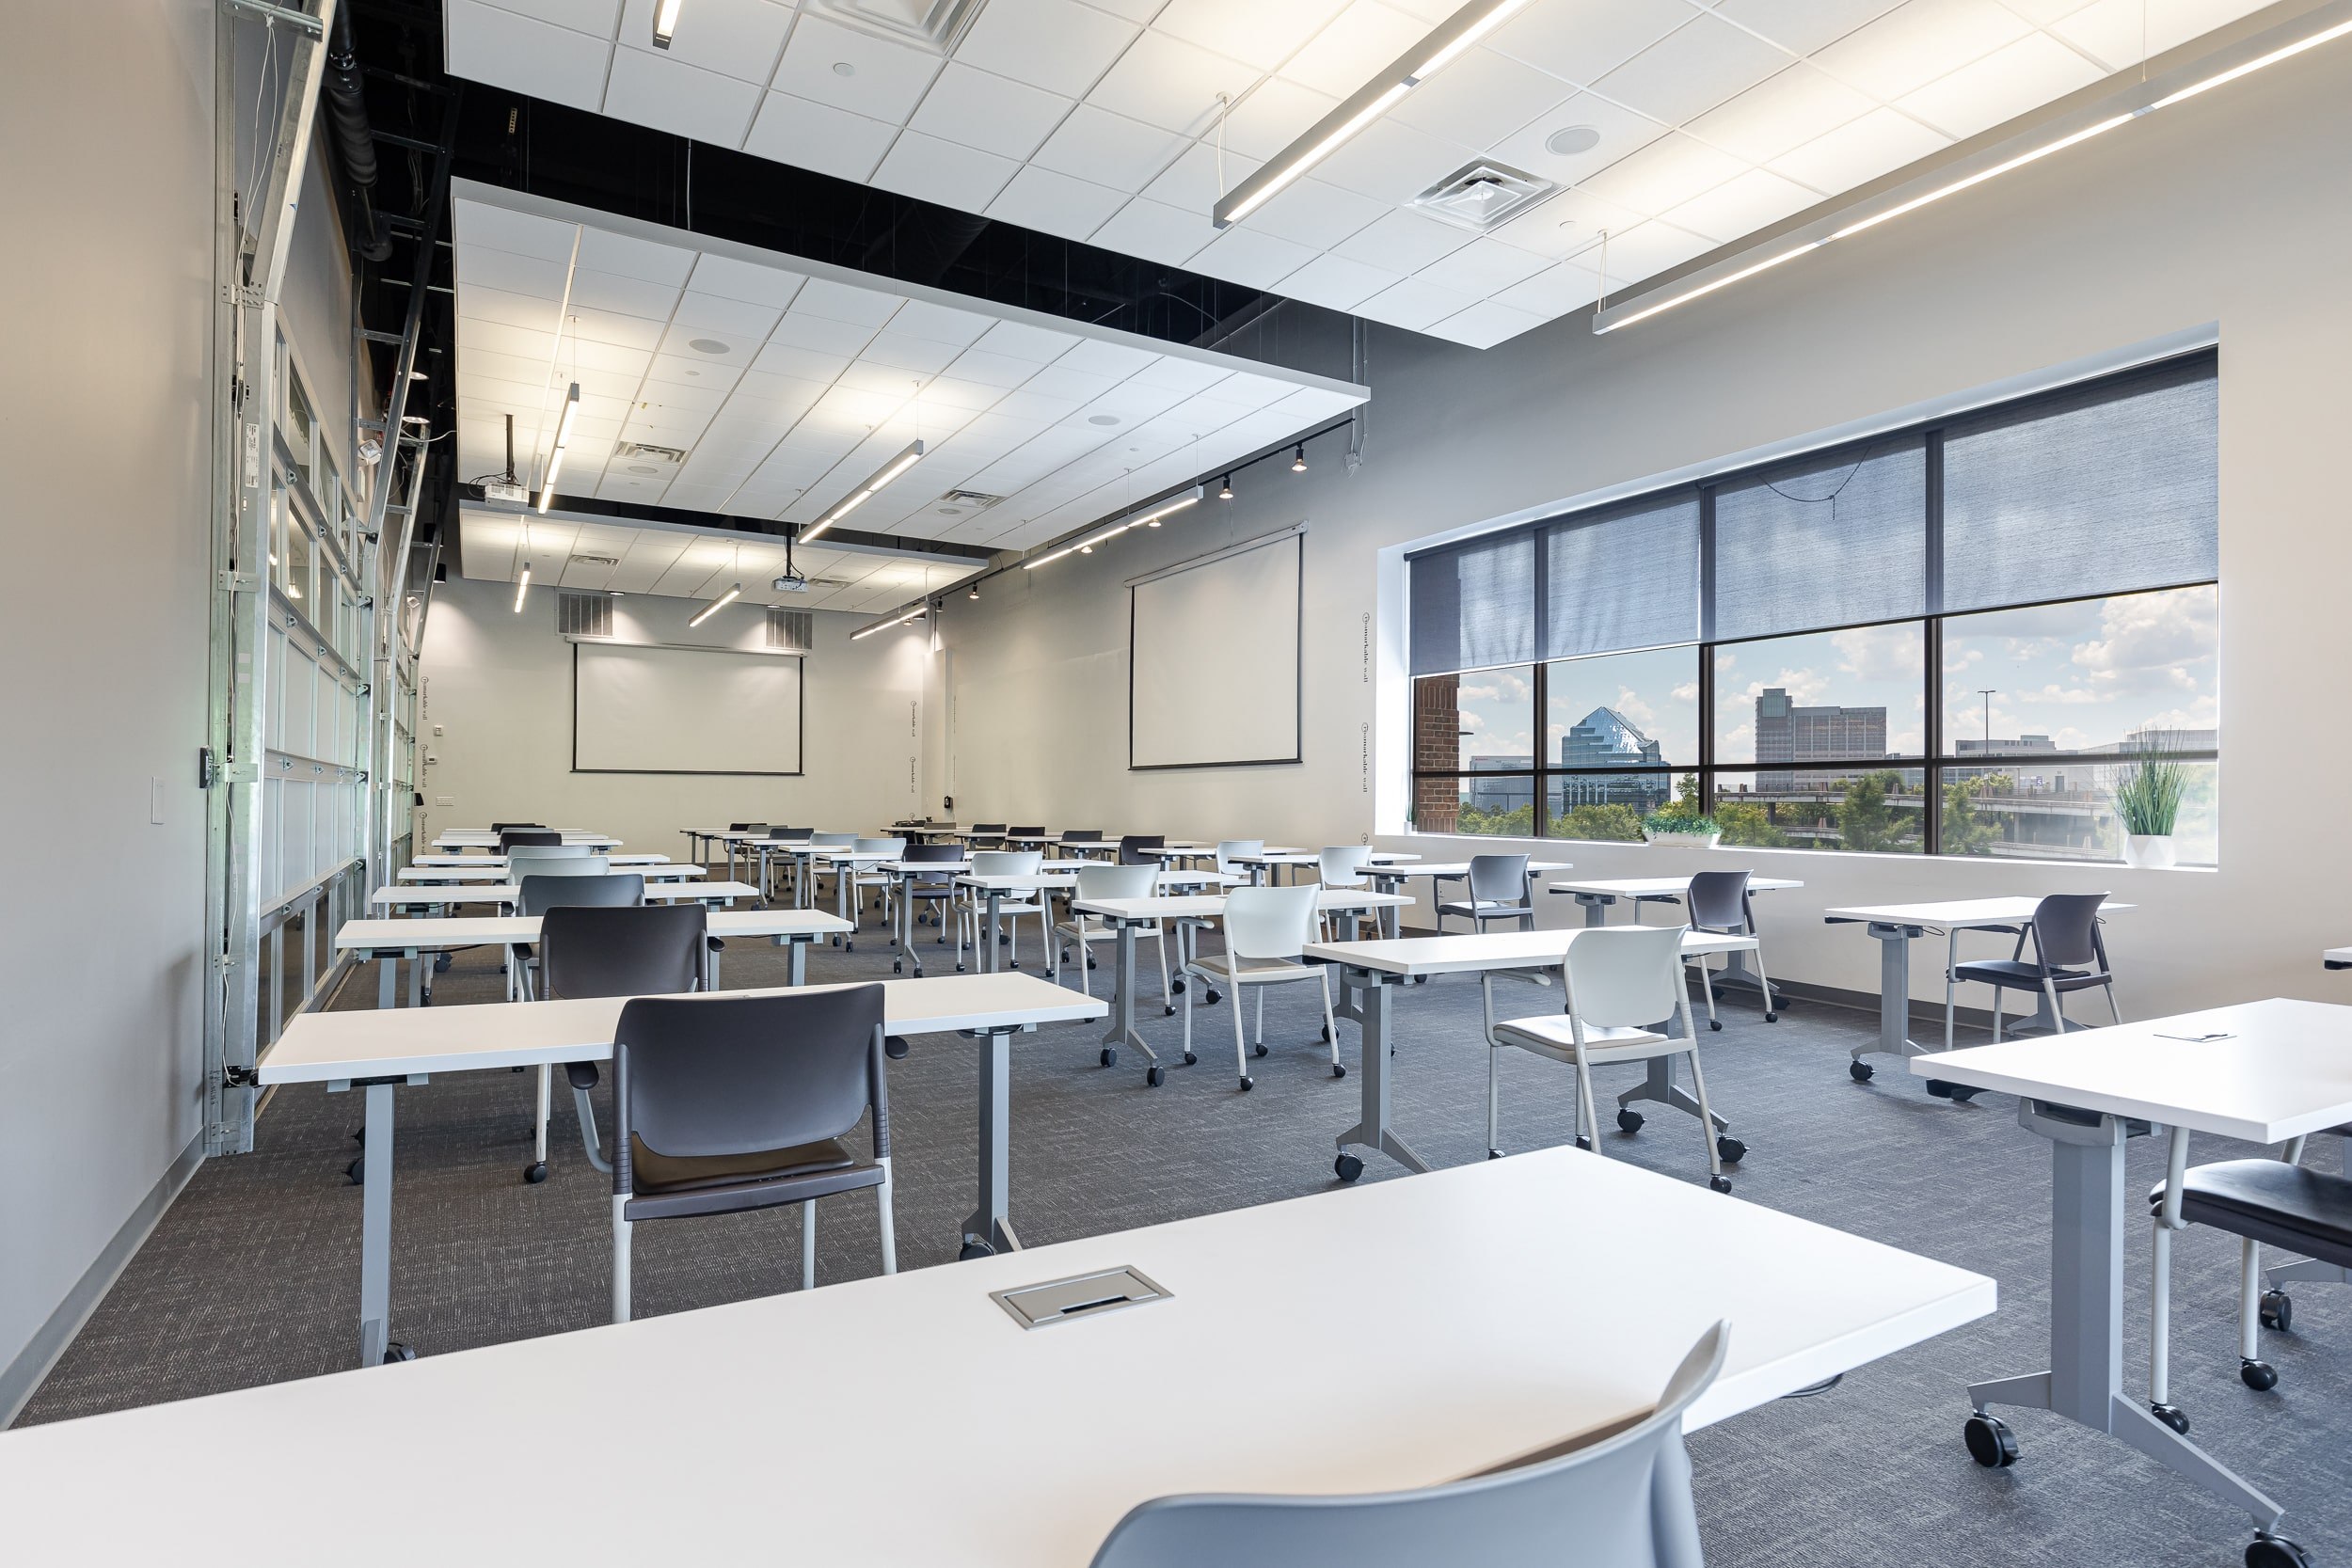 Socially distanced tables in Atlanta meeting space